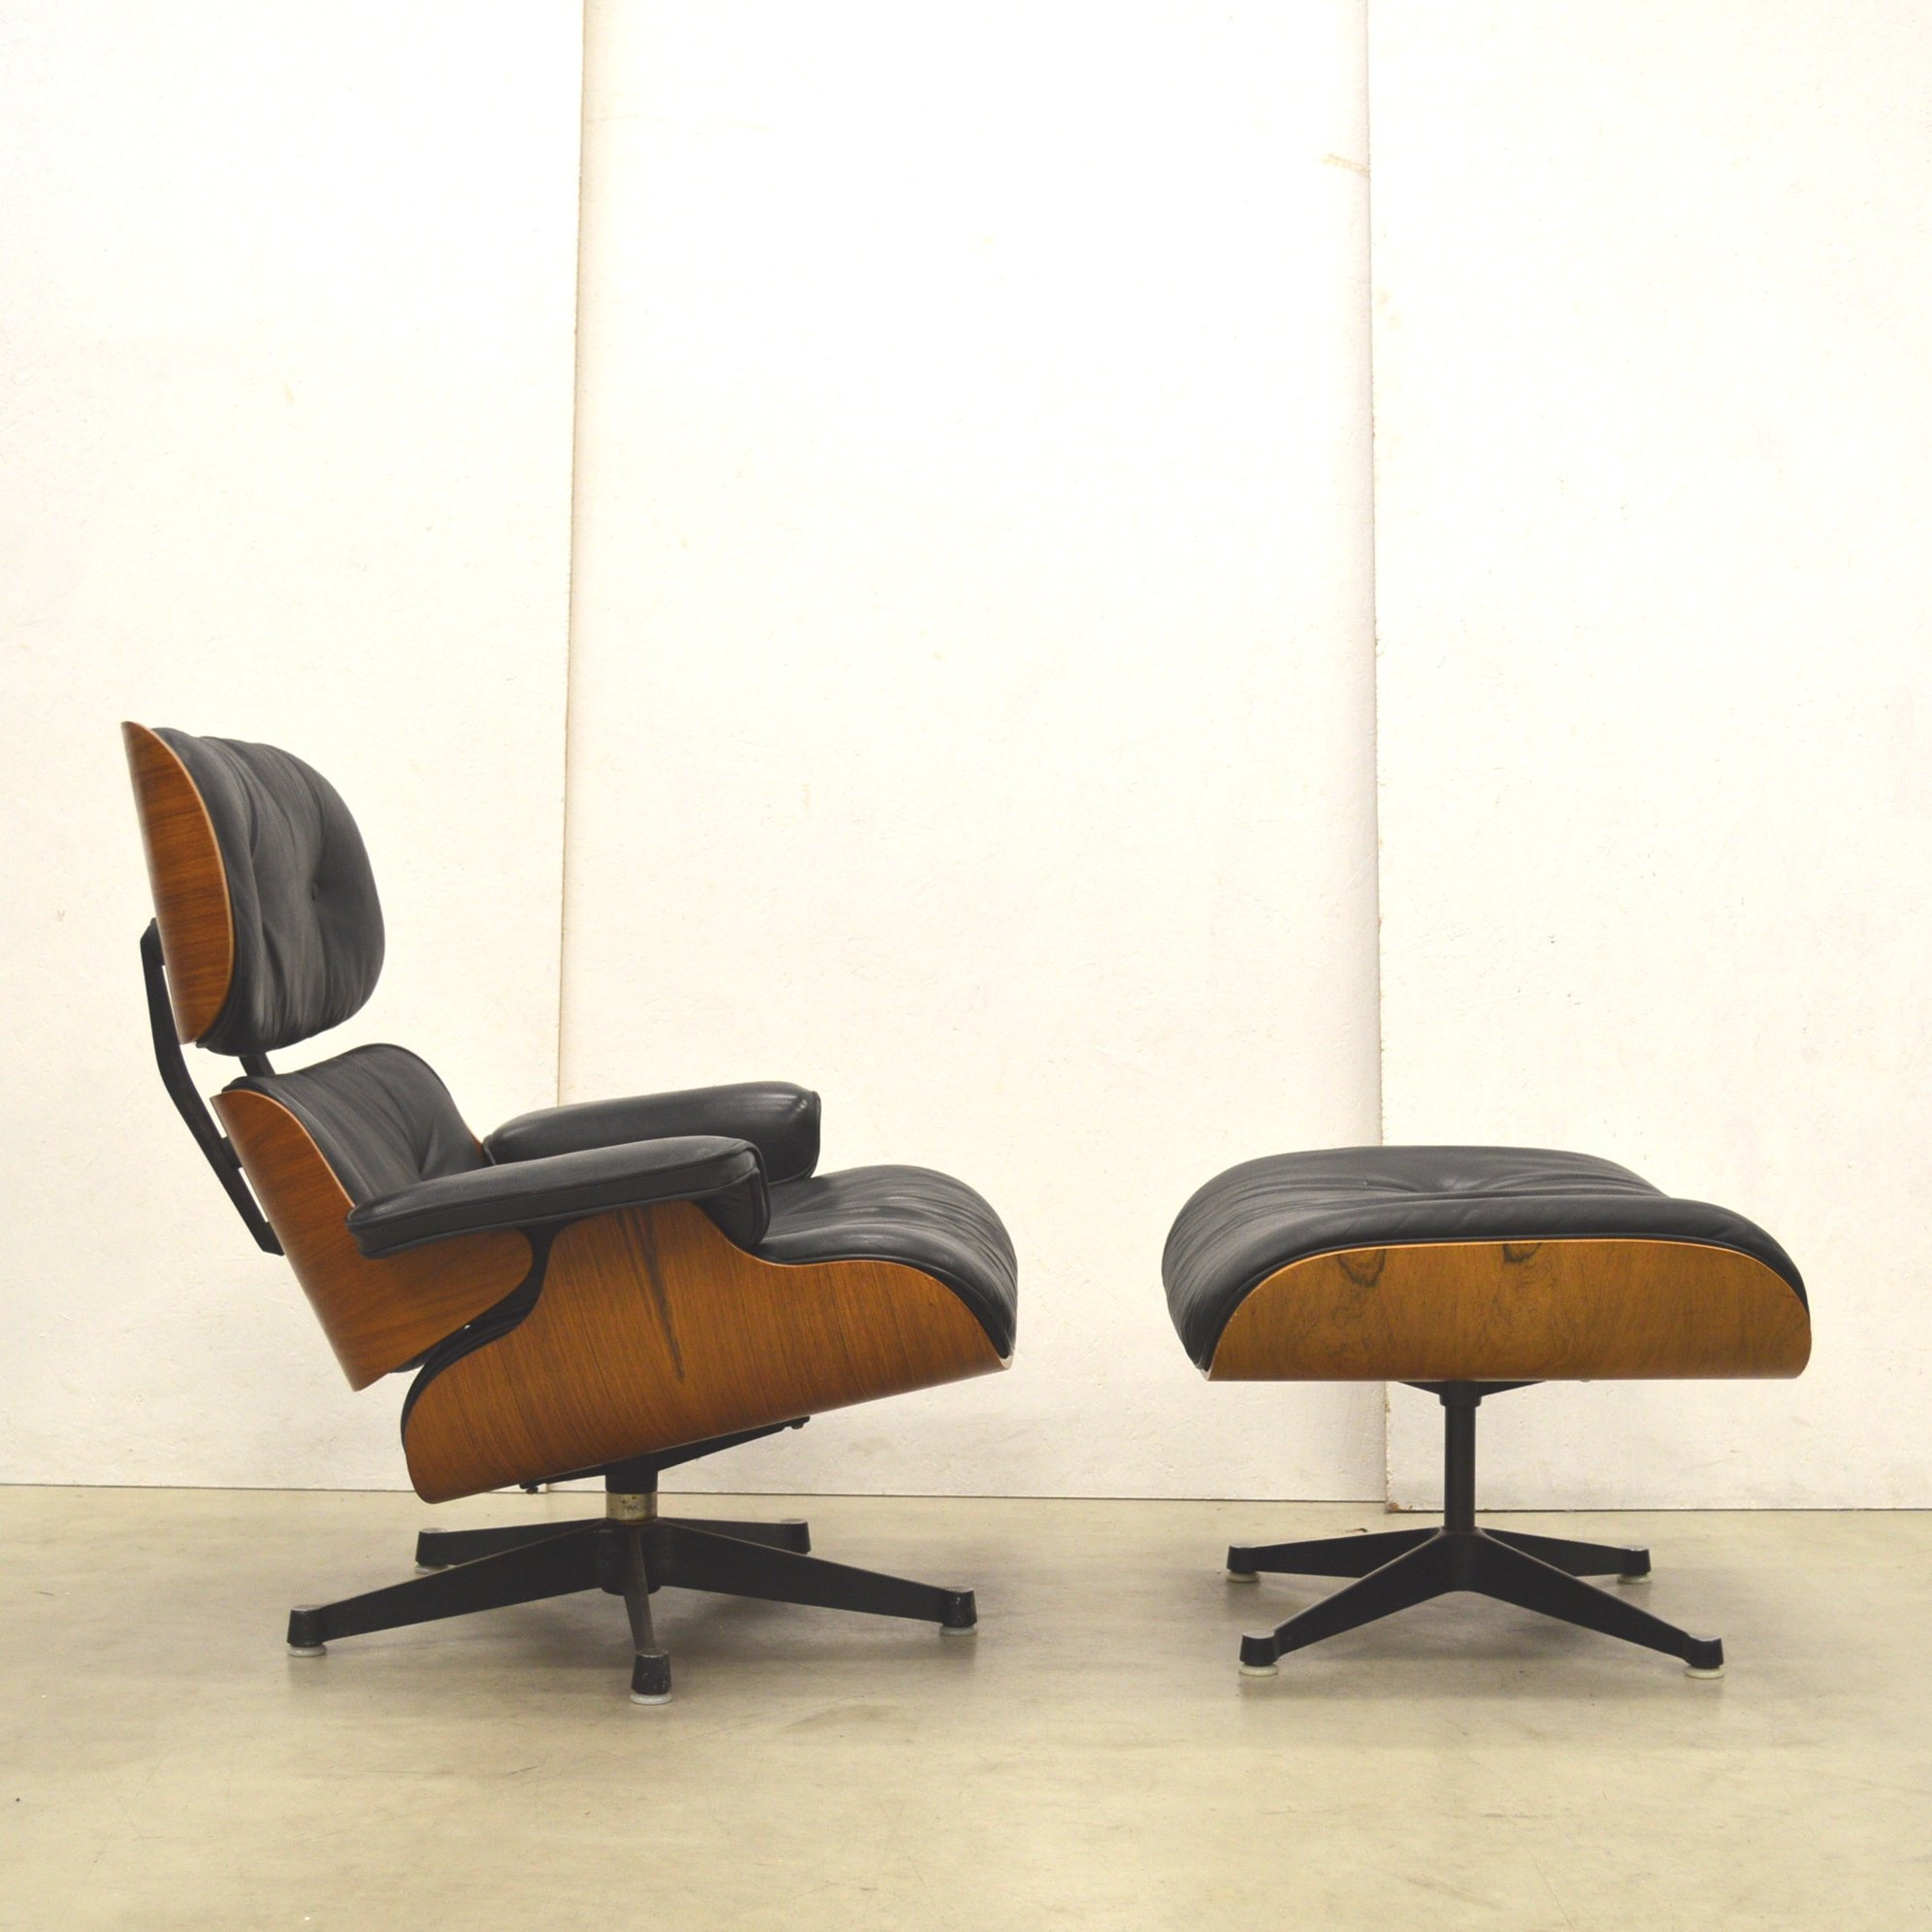 Lounge chair by Charles u0026 Ray Eames for Herman Miller 1960s : herman miller eames chairs - Cheerinfomania.Com